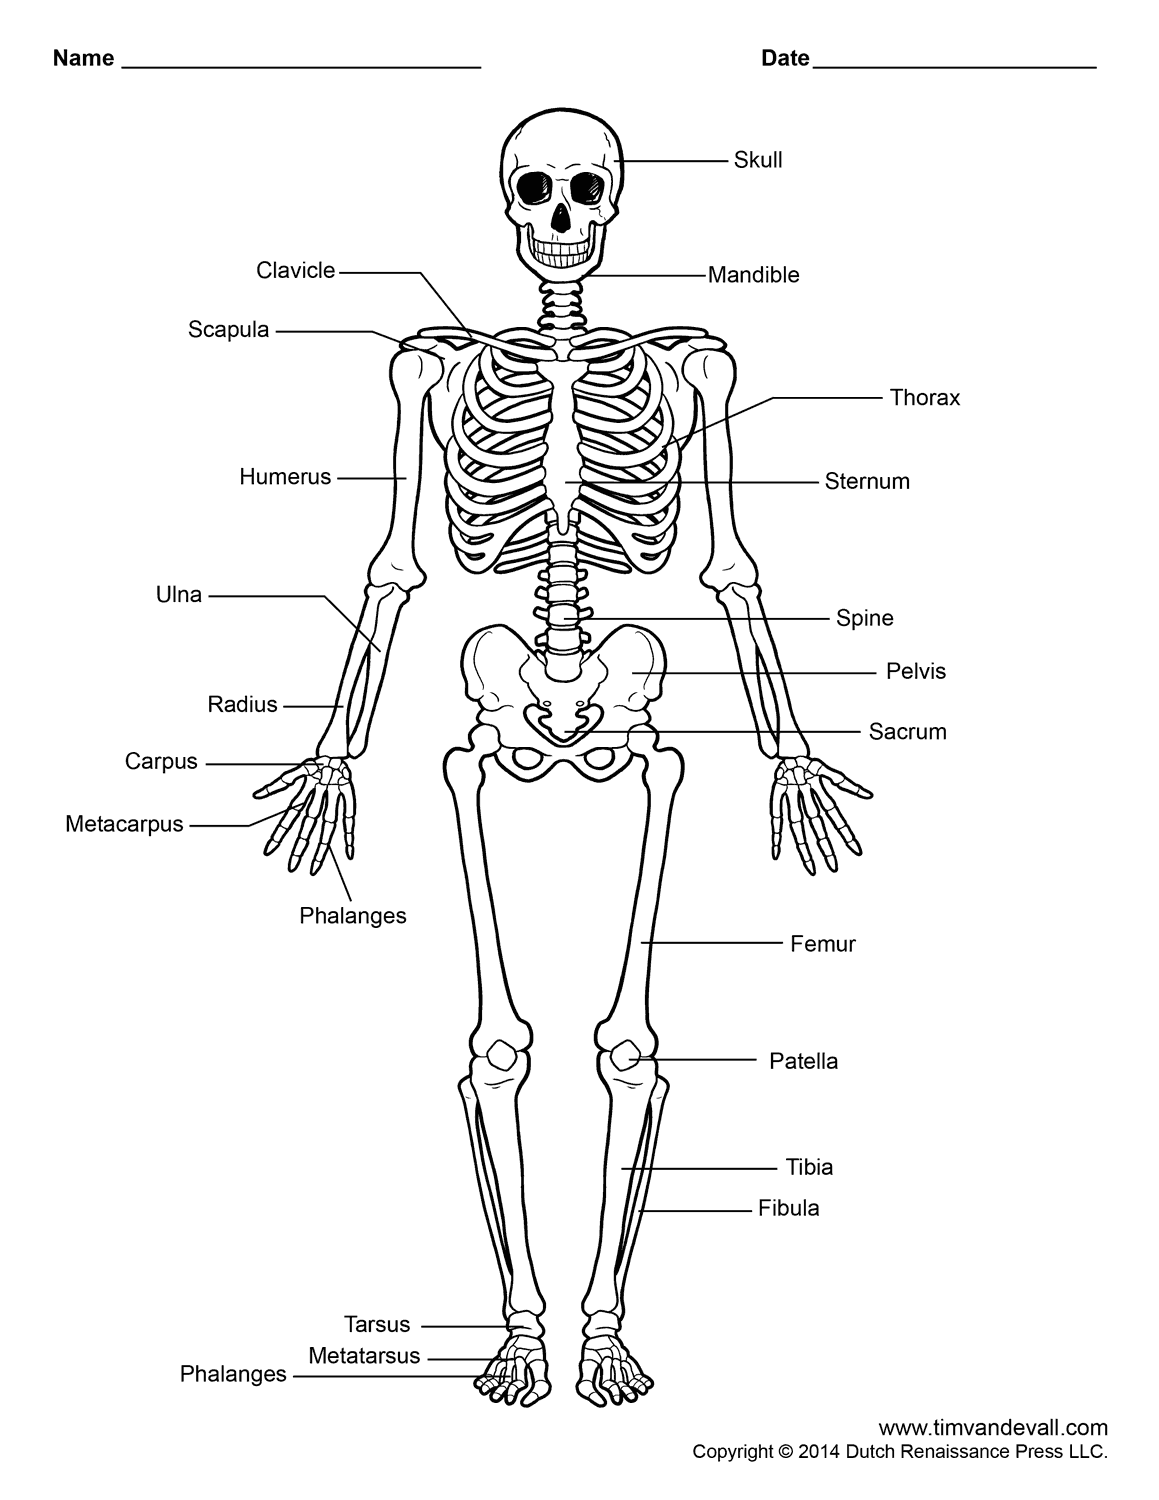 Human Skeleton Labeled Science Lessons Ideas Pinterest Human